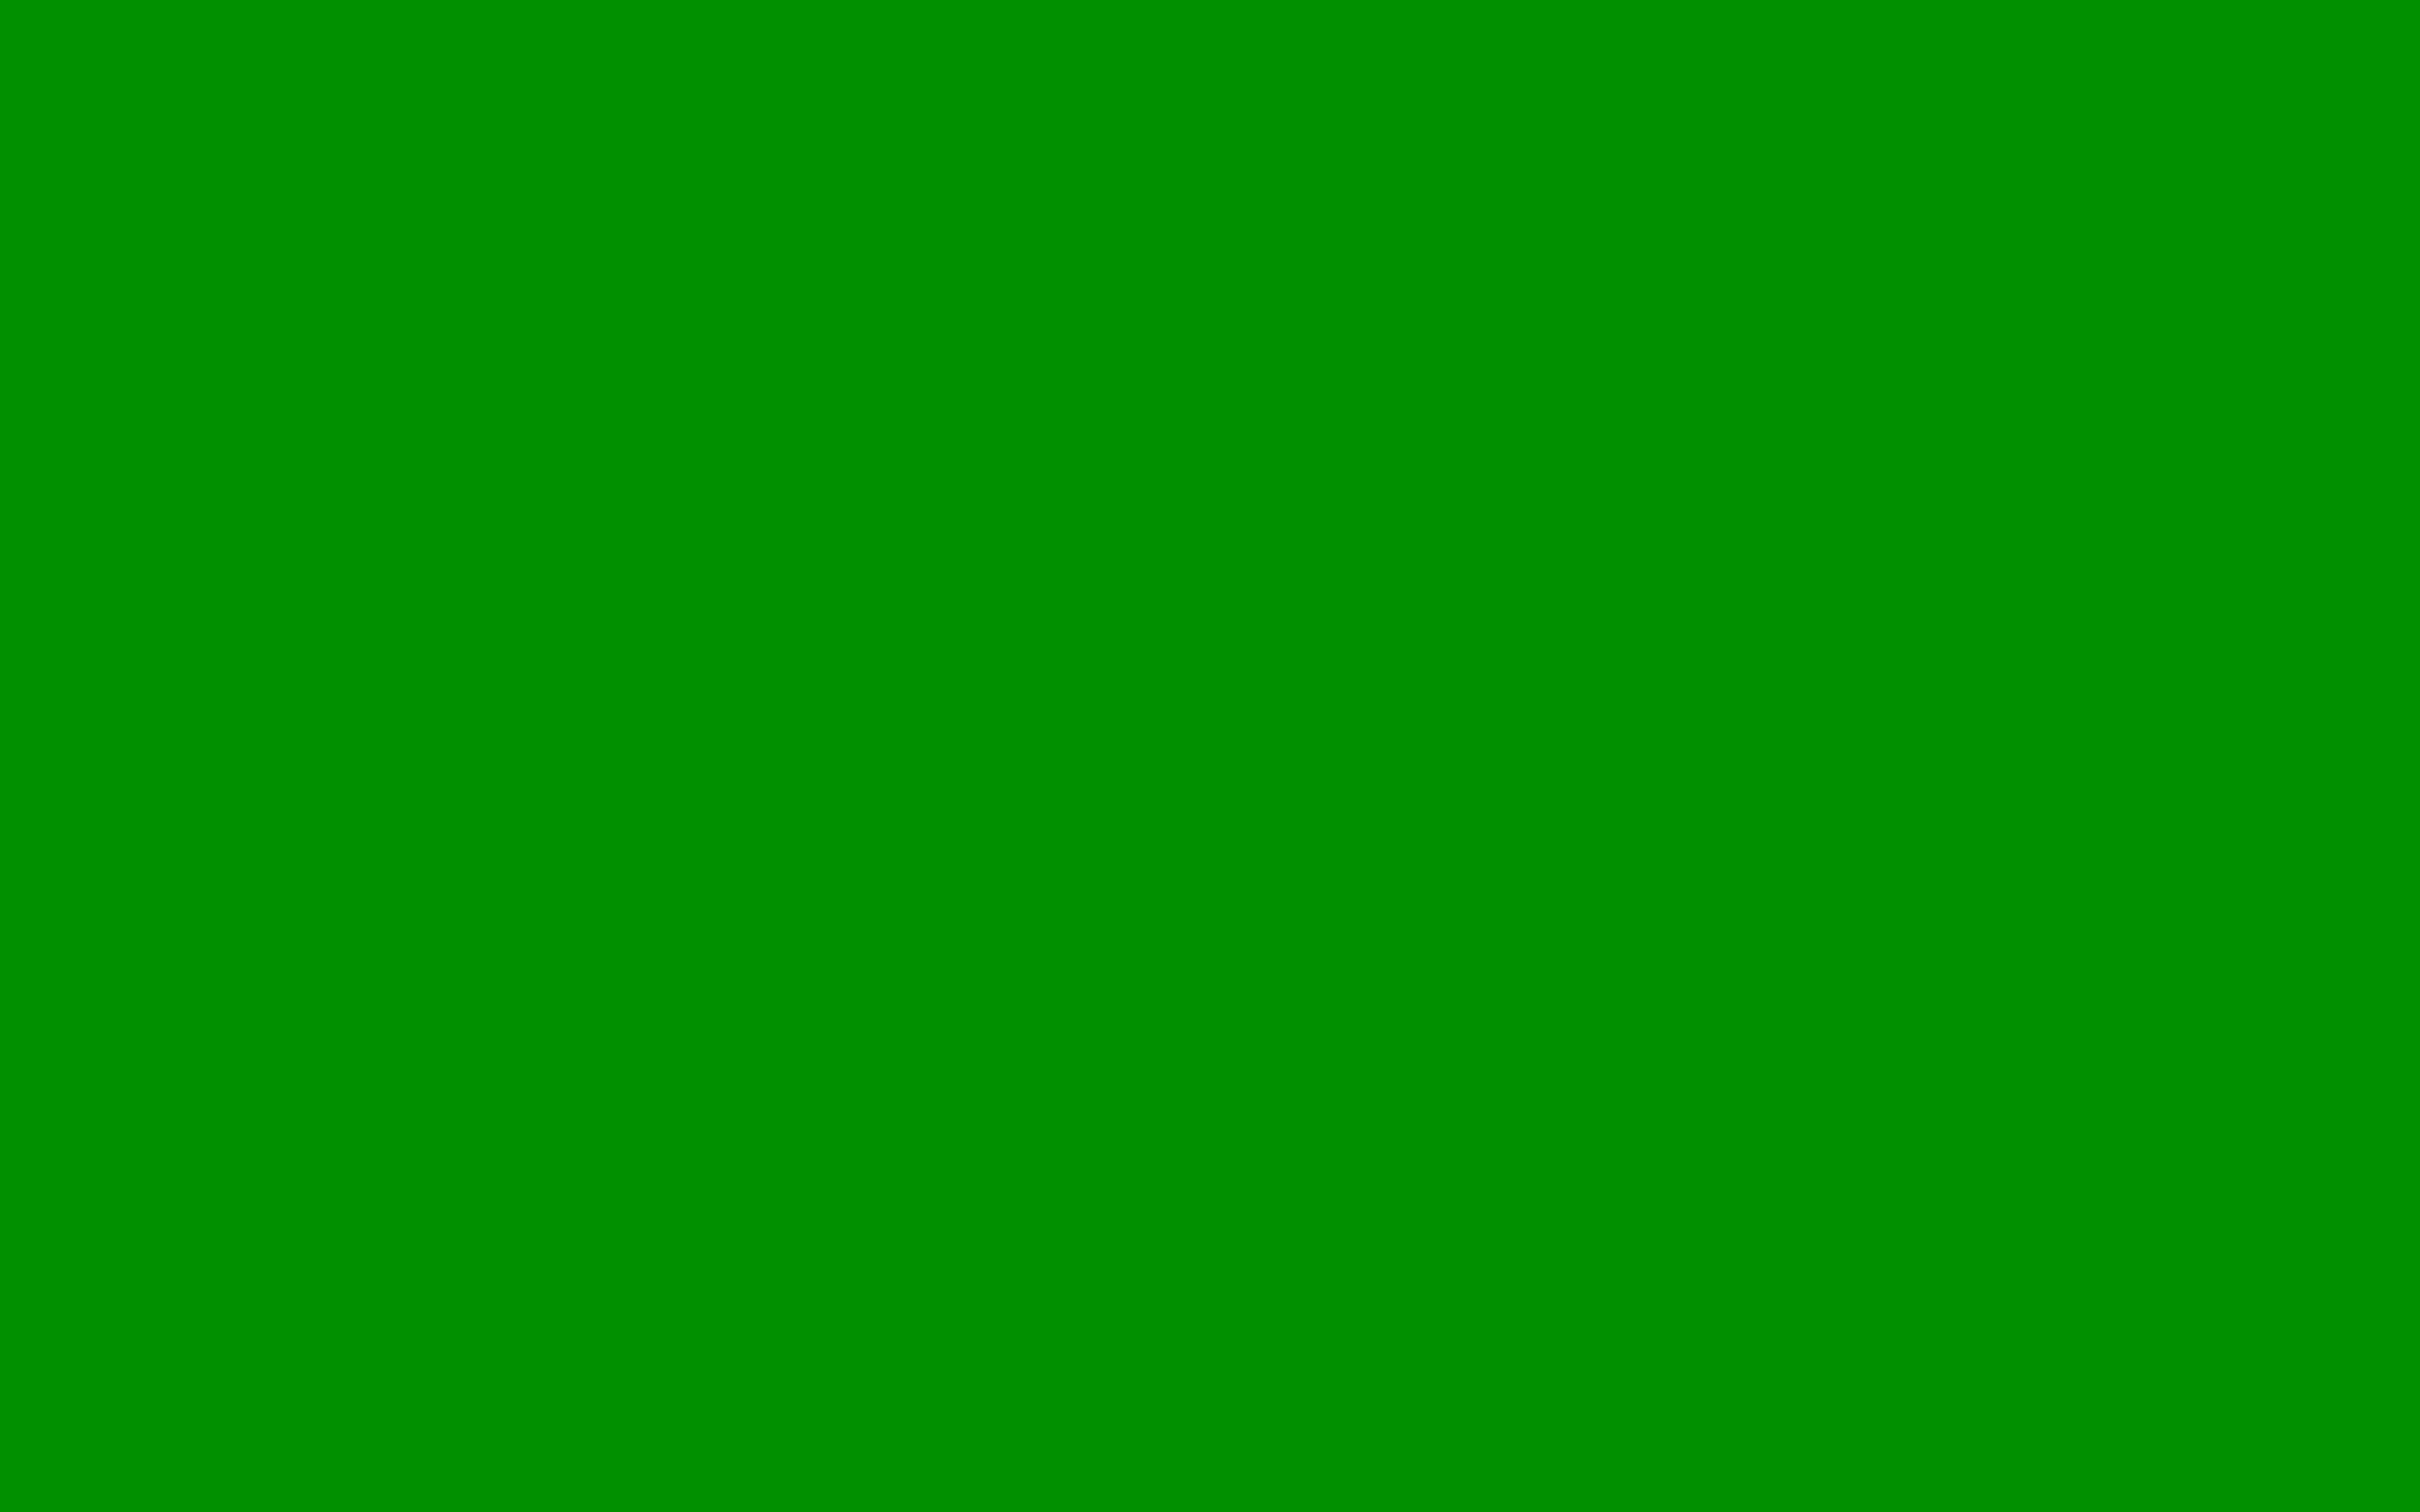 2560x1600 Islamic Green Solid Color Background